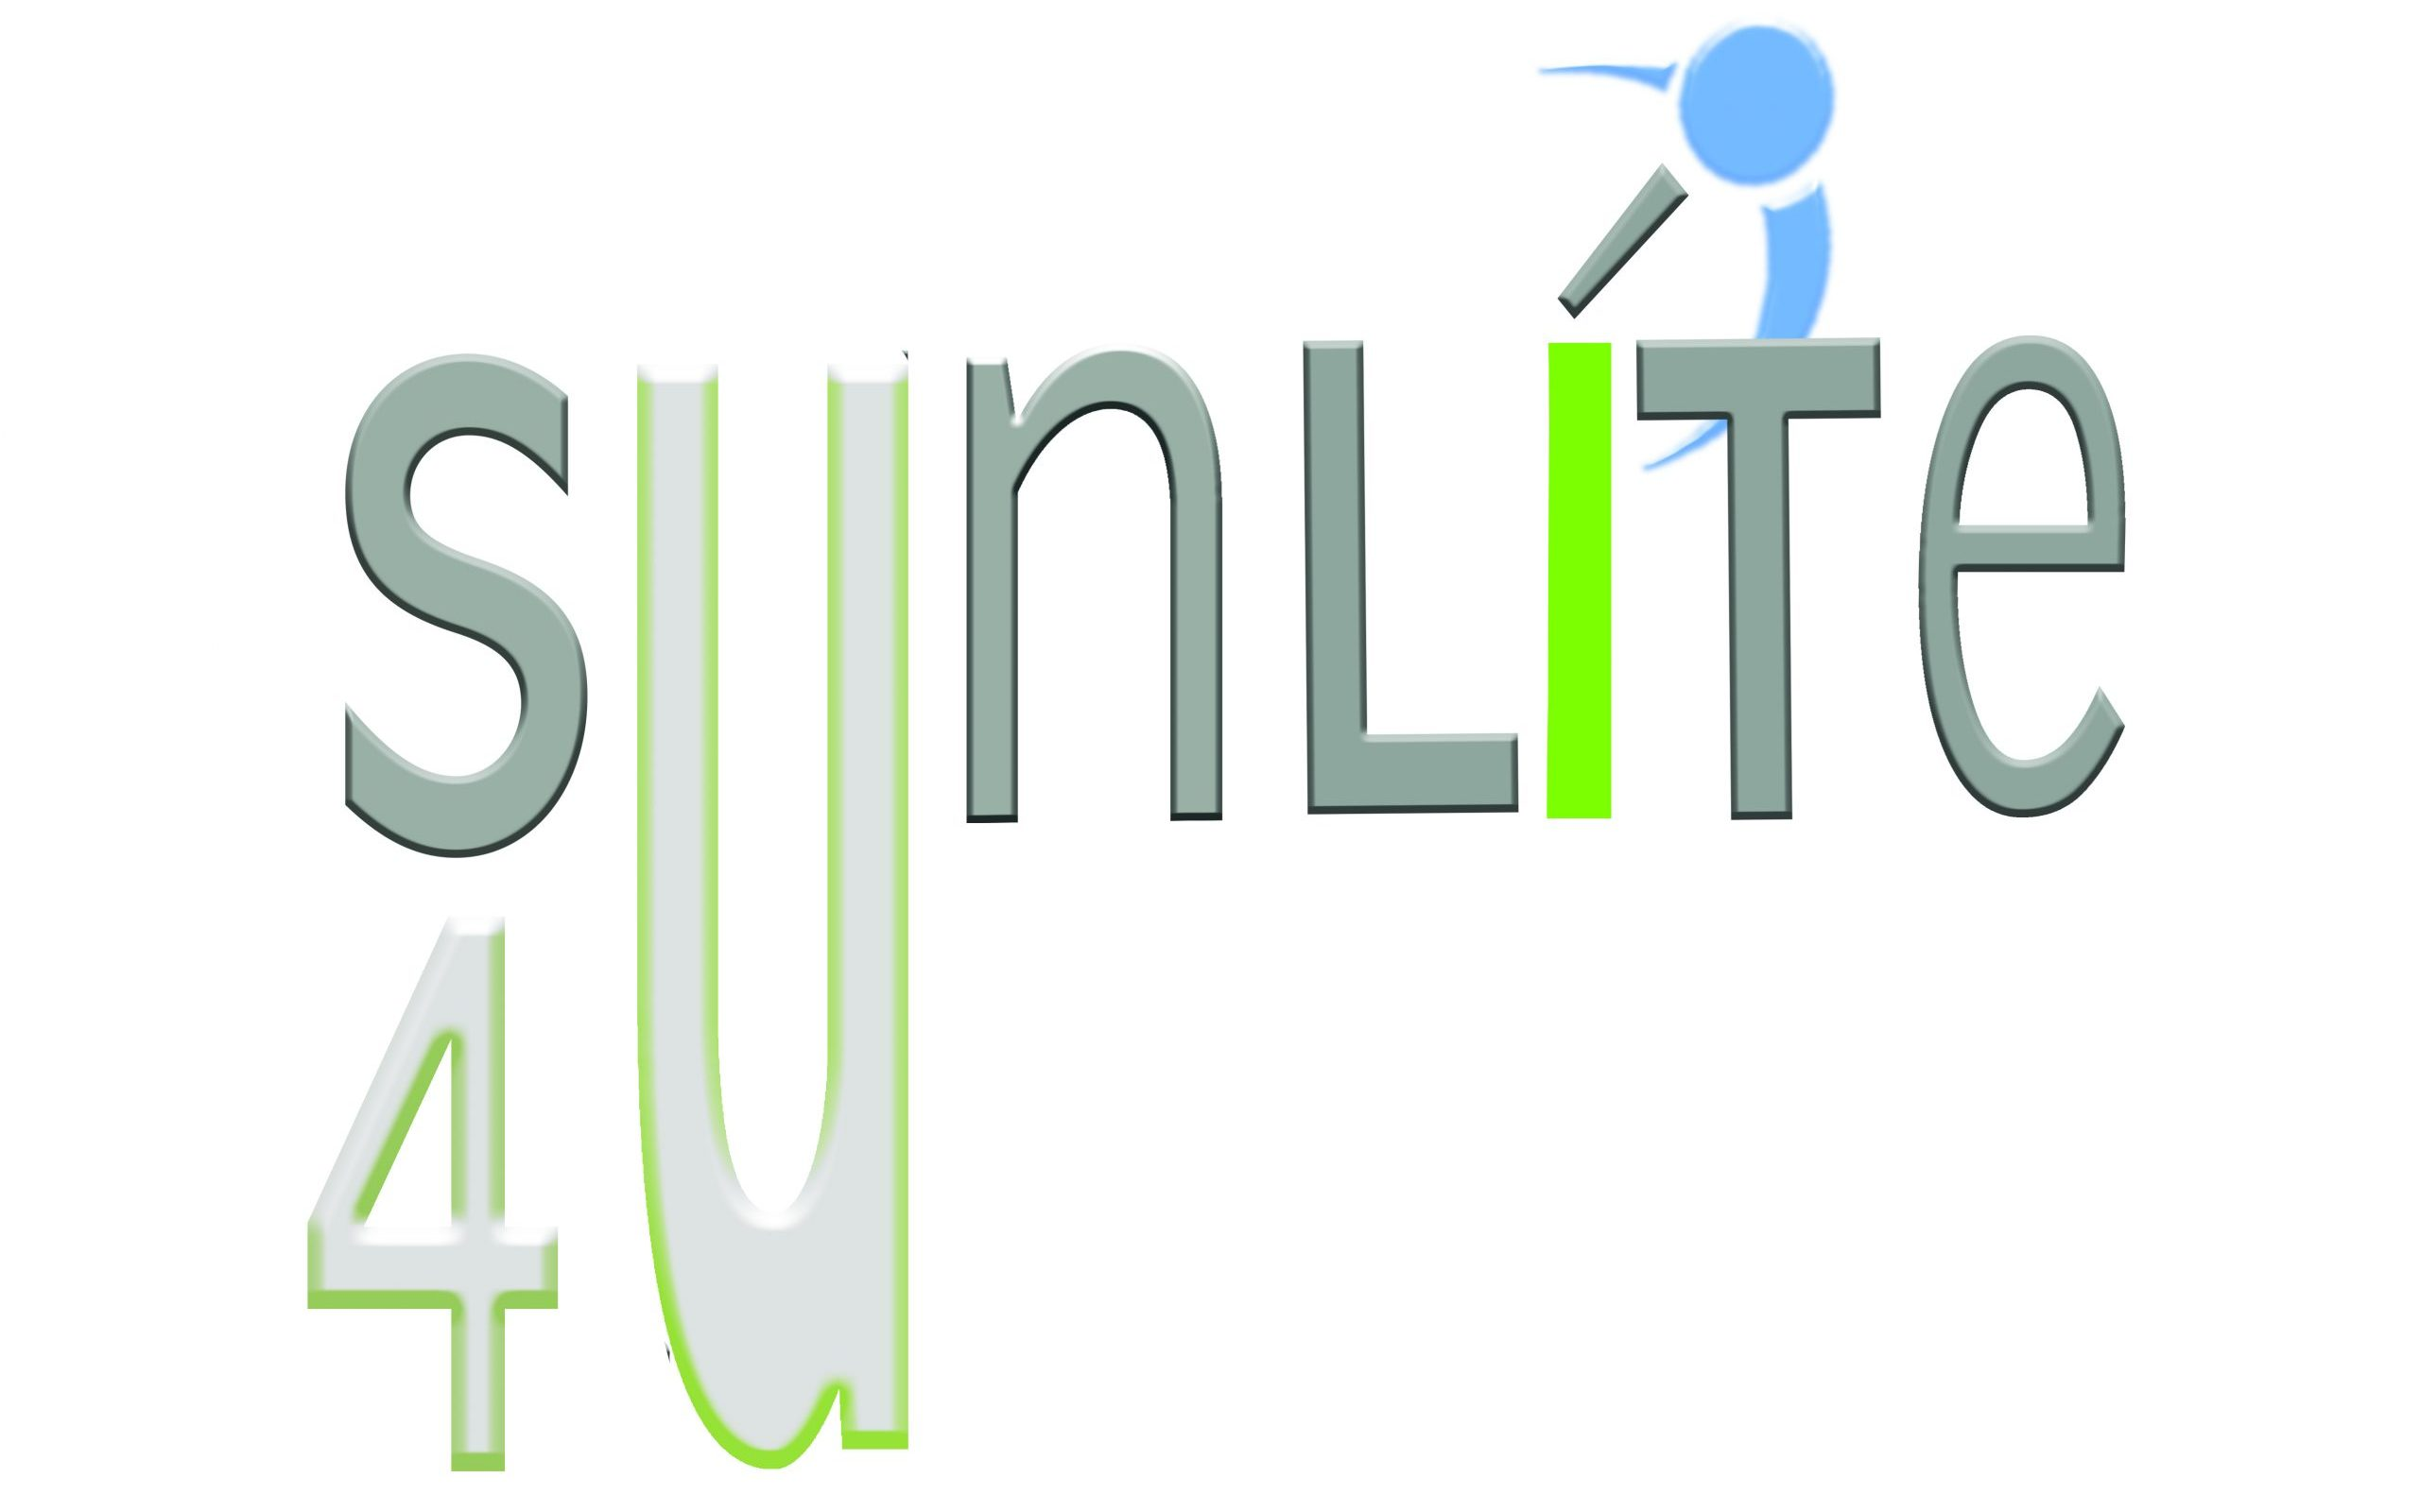 Sunlite4u - Supported Living Care for South East London